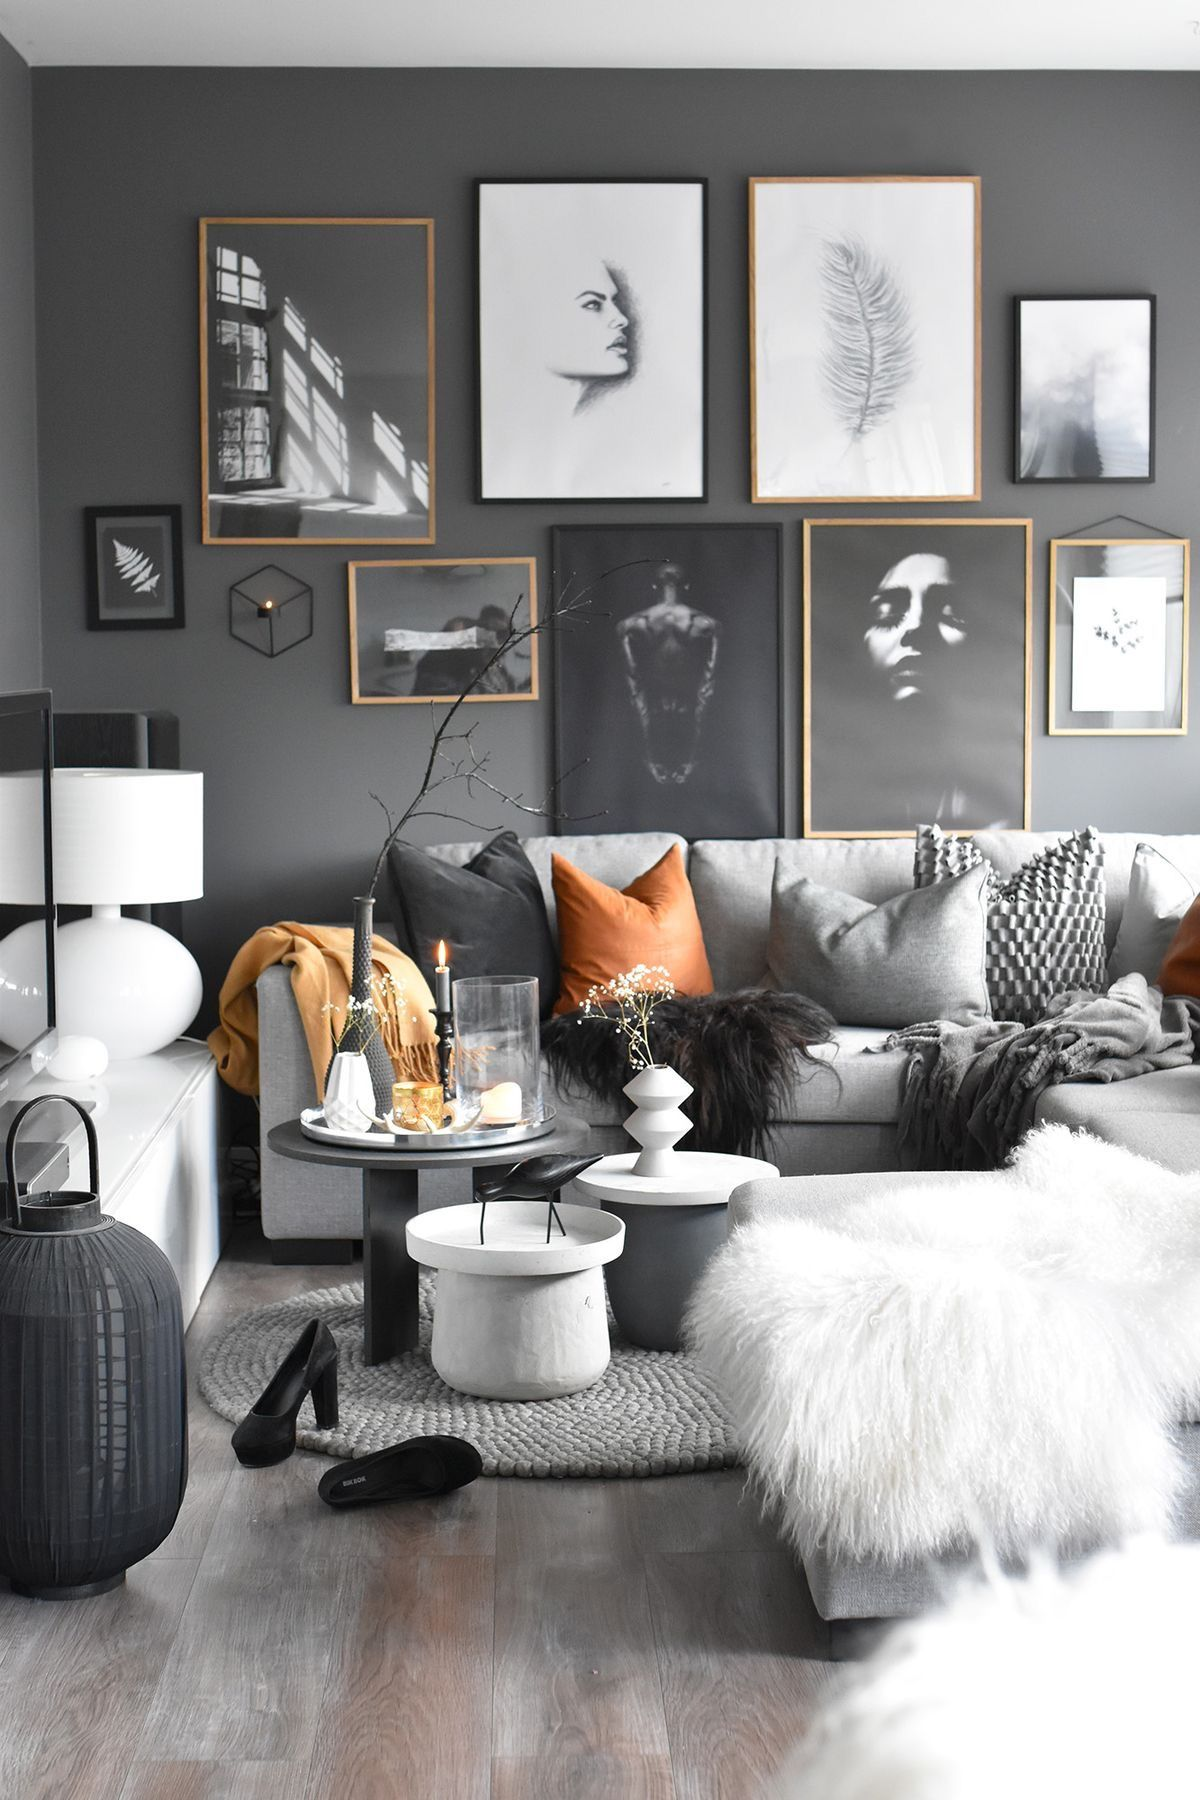 Pin by 🌸Jackie🌸 on DESIGN/GRAY Living room wall